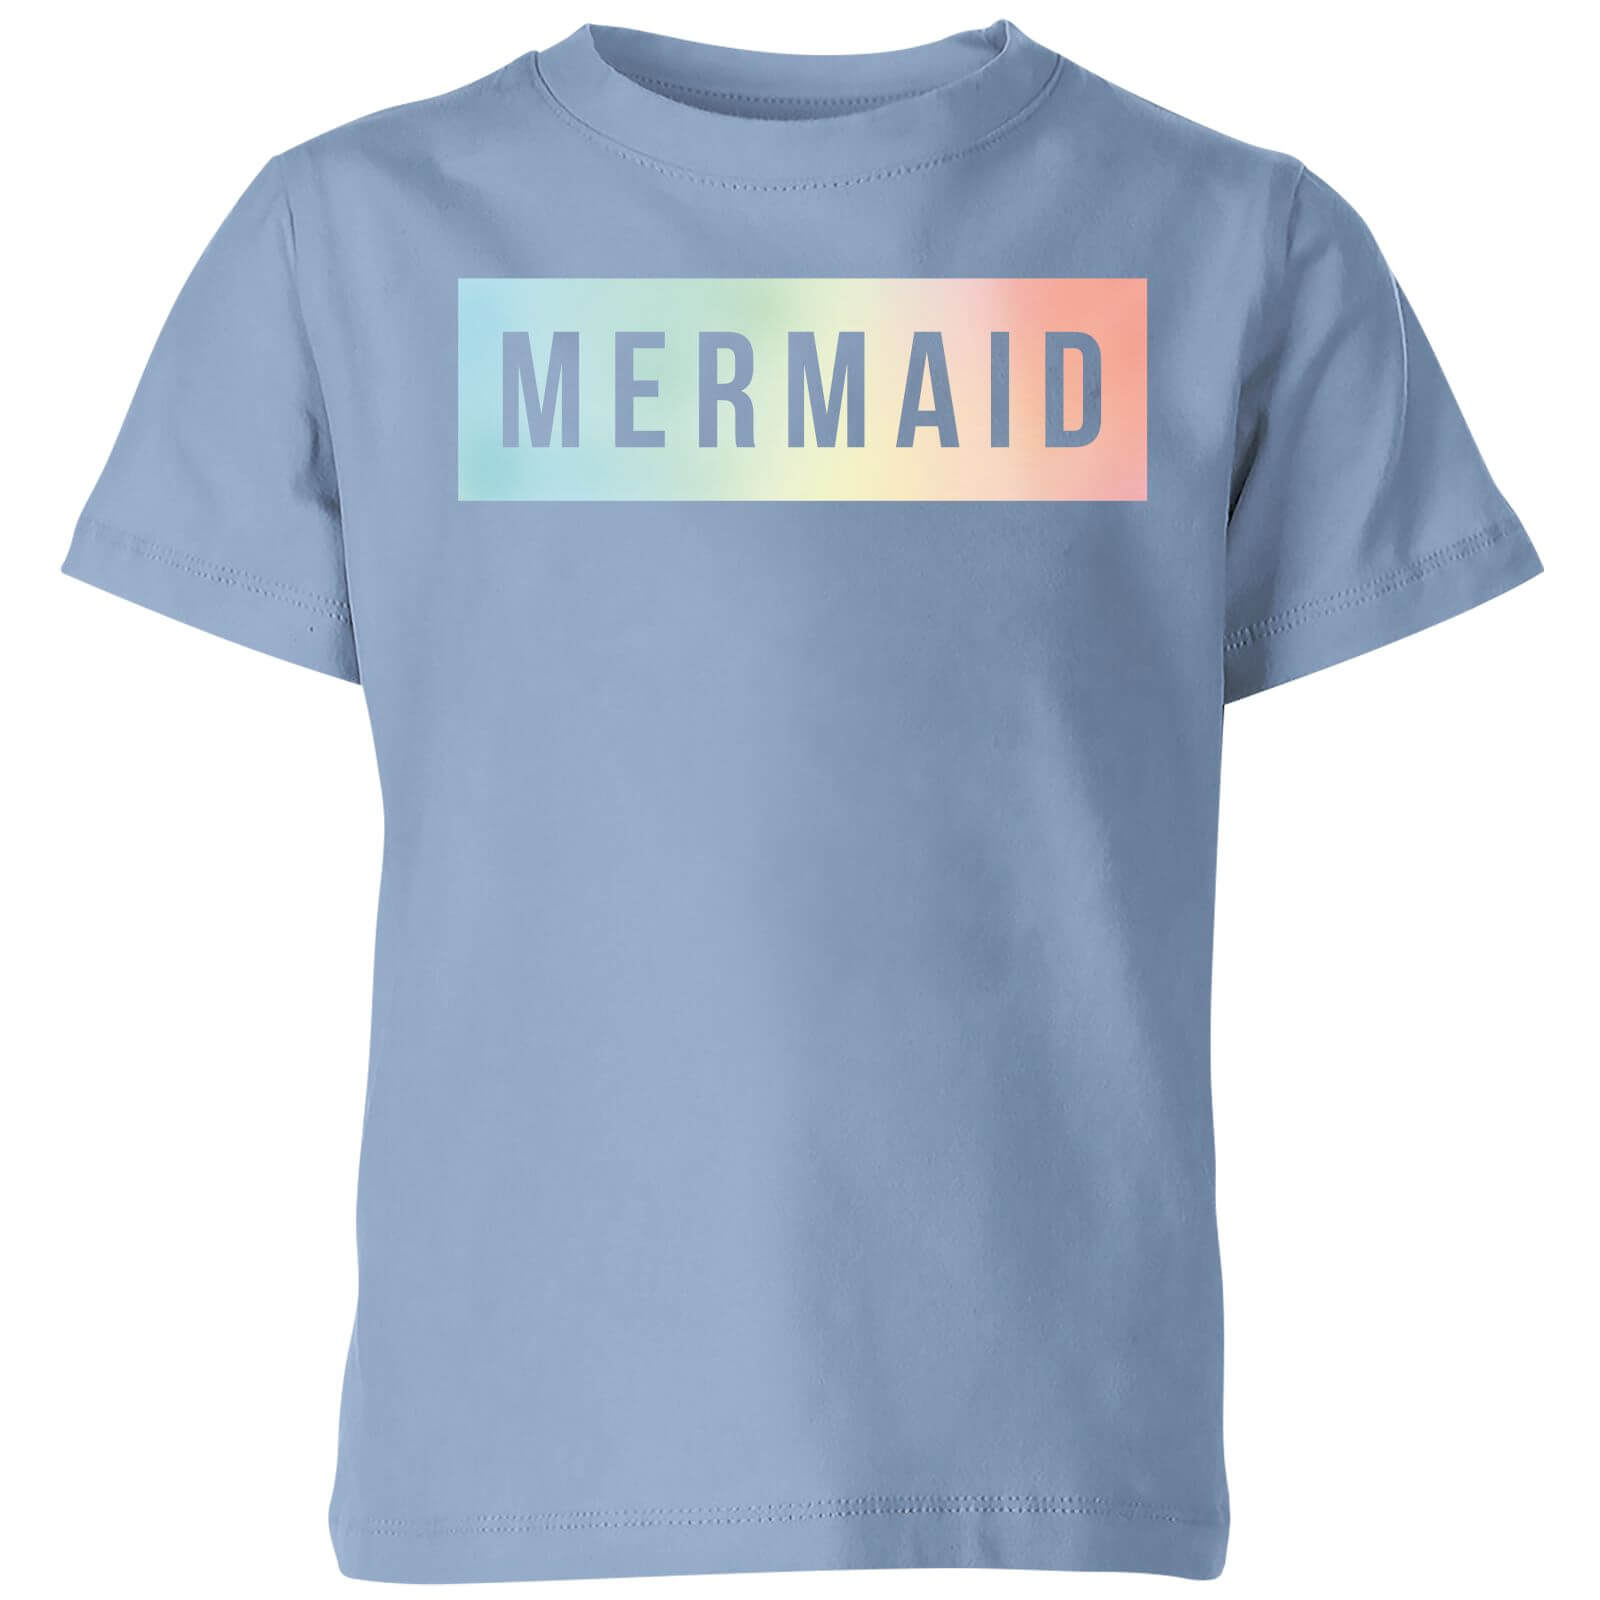 My Little Rascal Mermaid - Baby Blue Kids